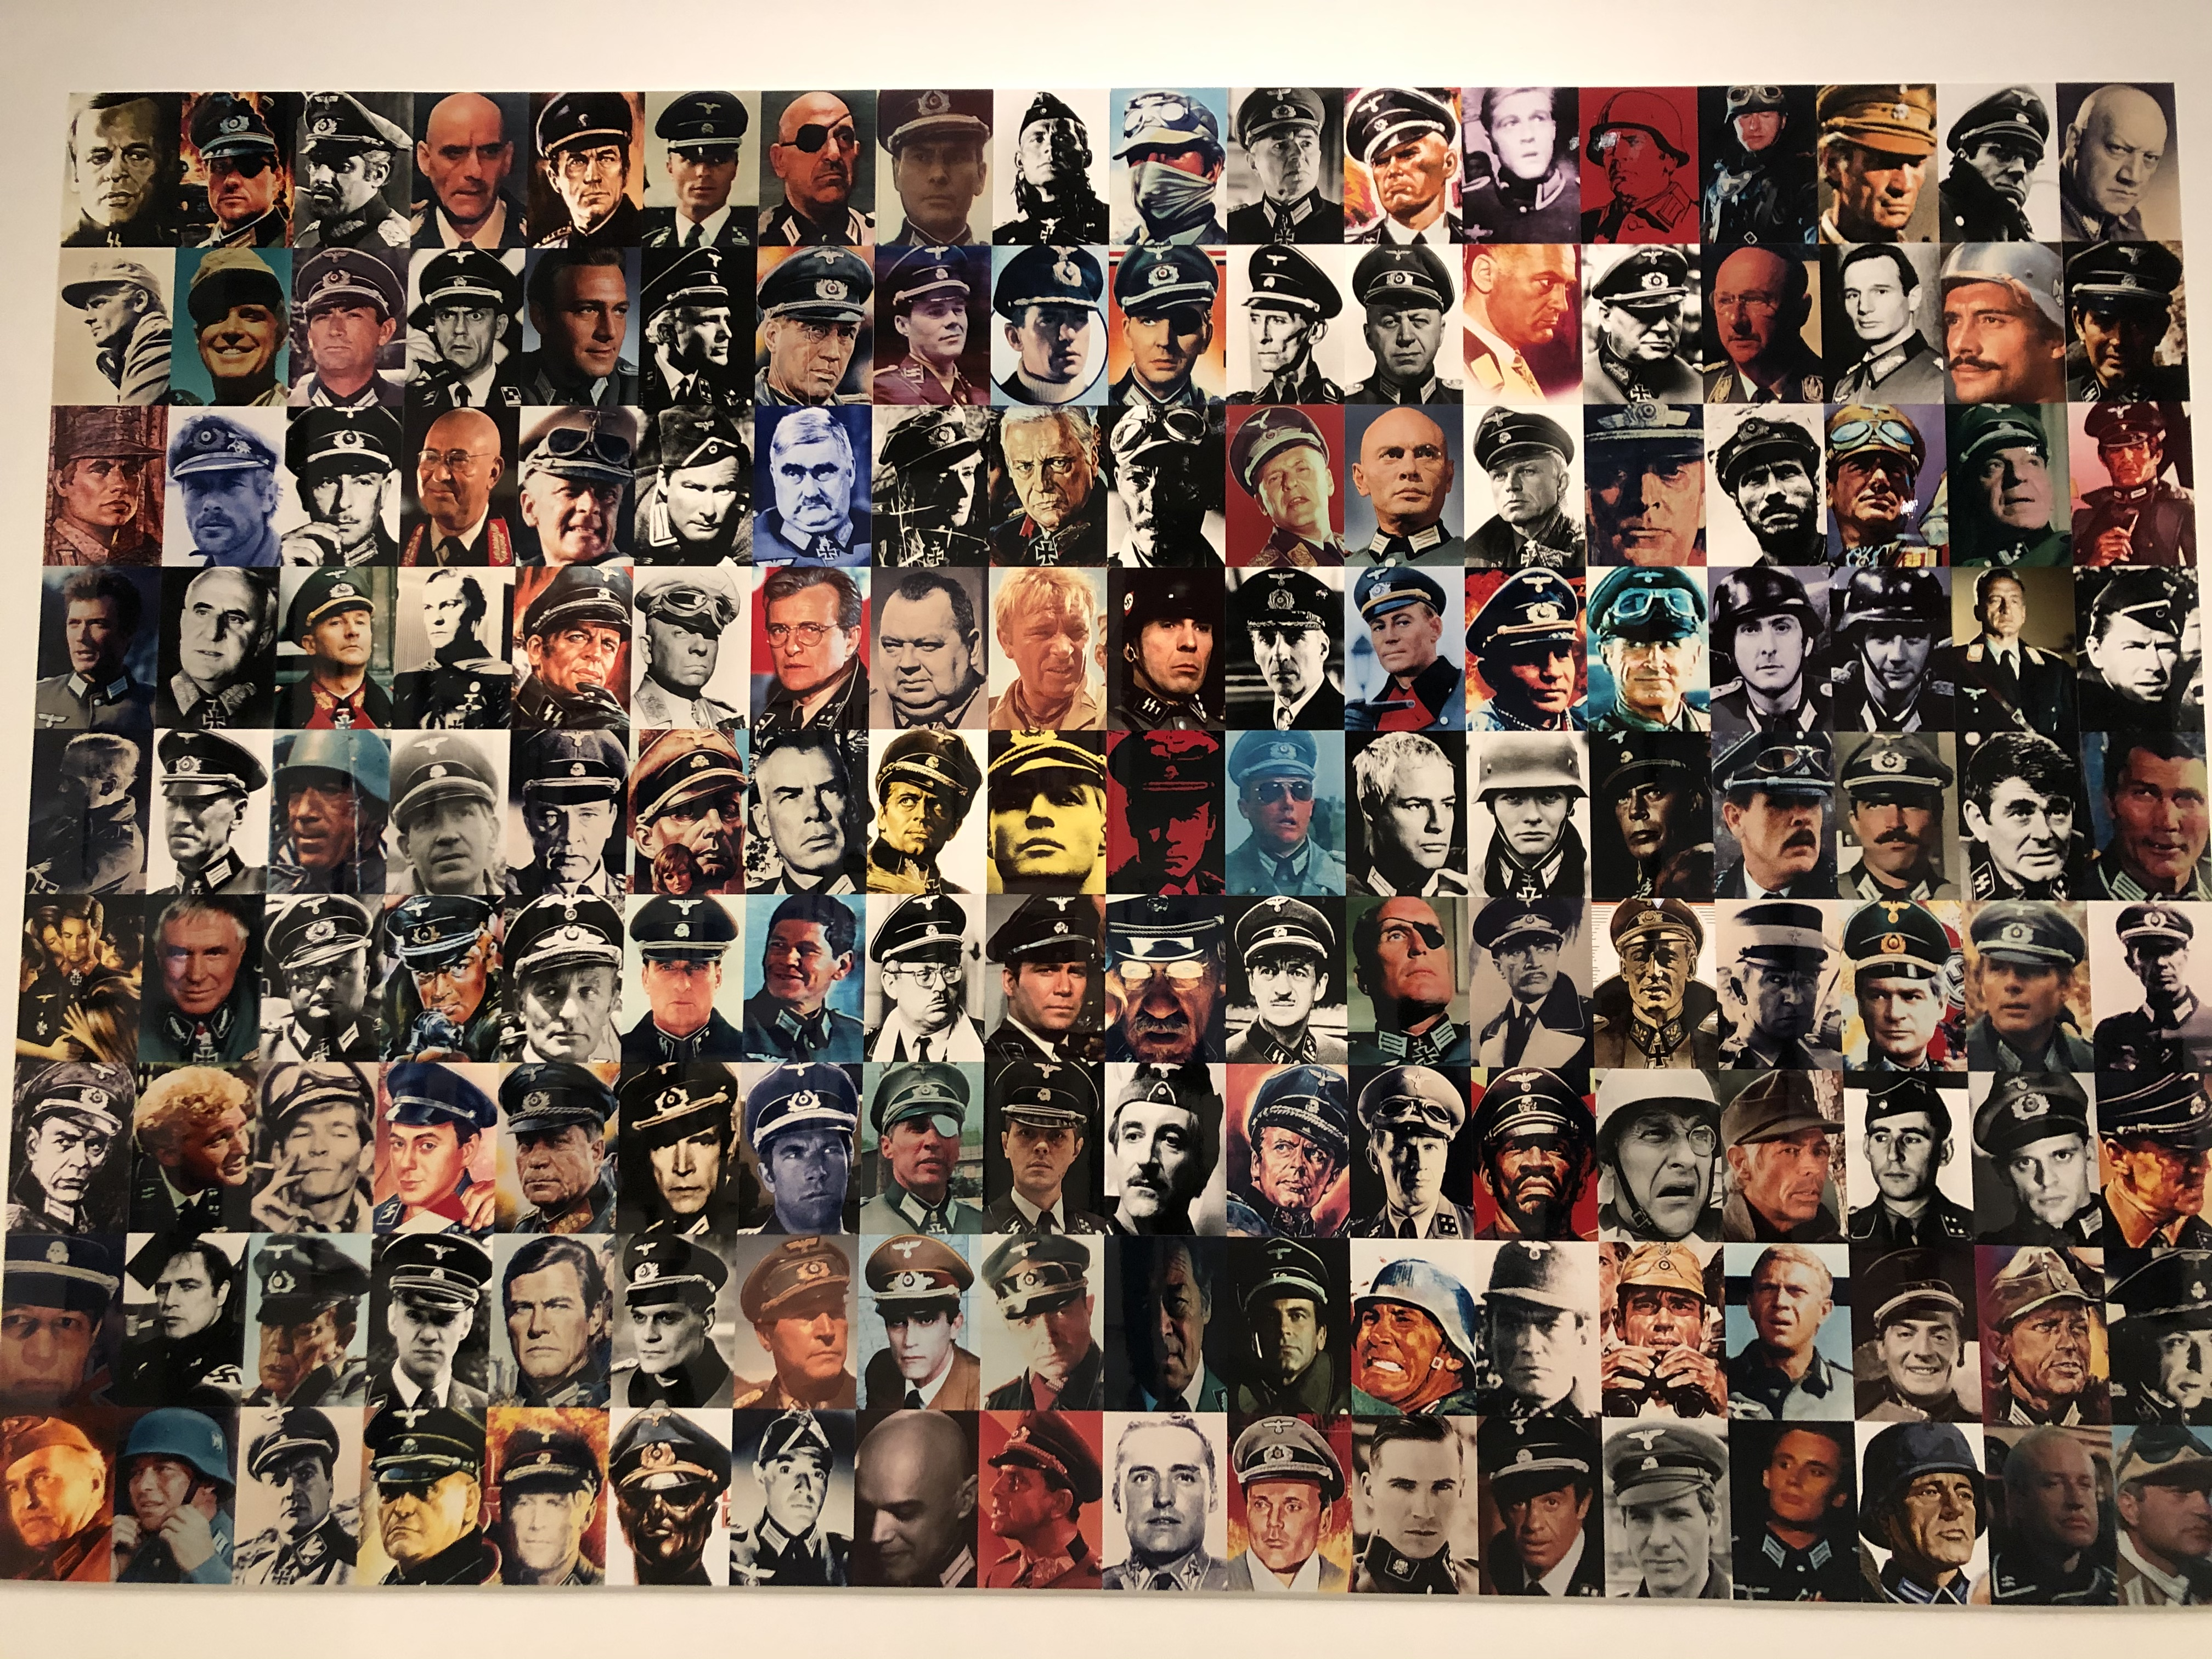 Piotr Uklanski's 'The Nazi's': Montage Of Famous Actors Playing Nazi Leaders